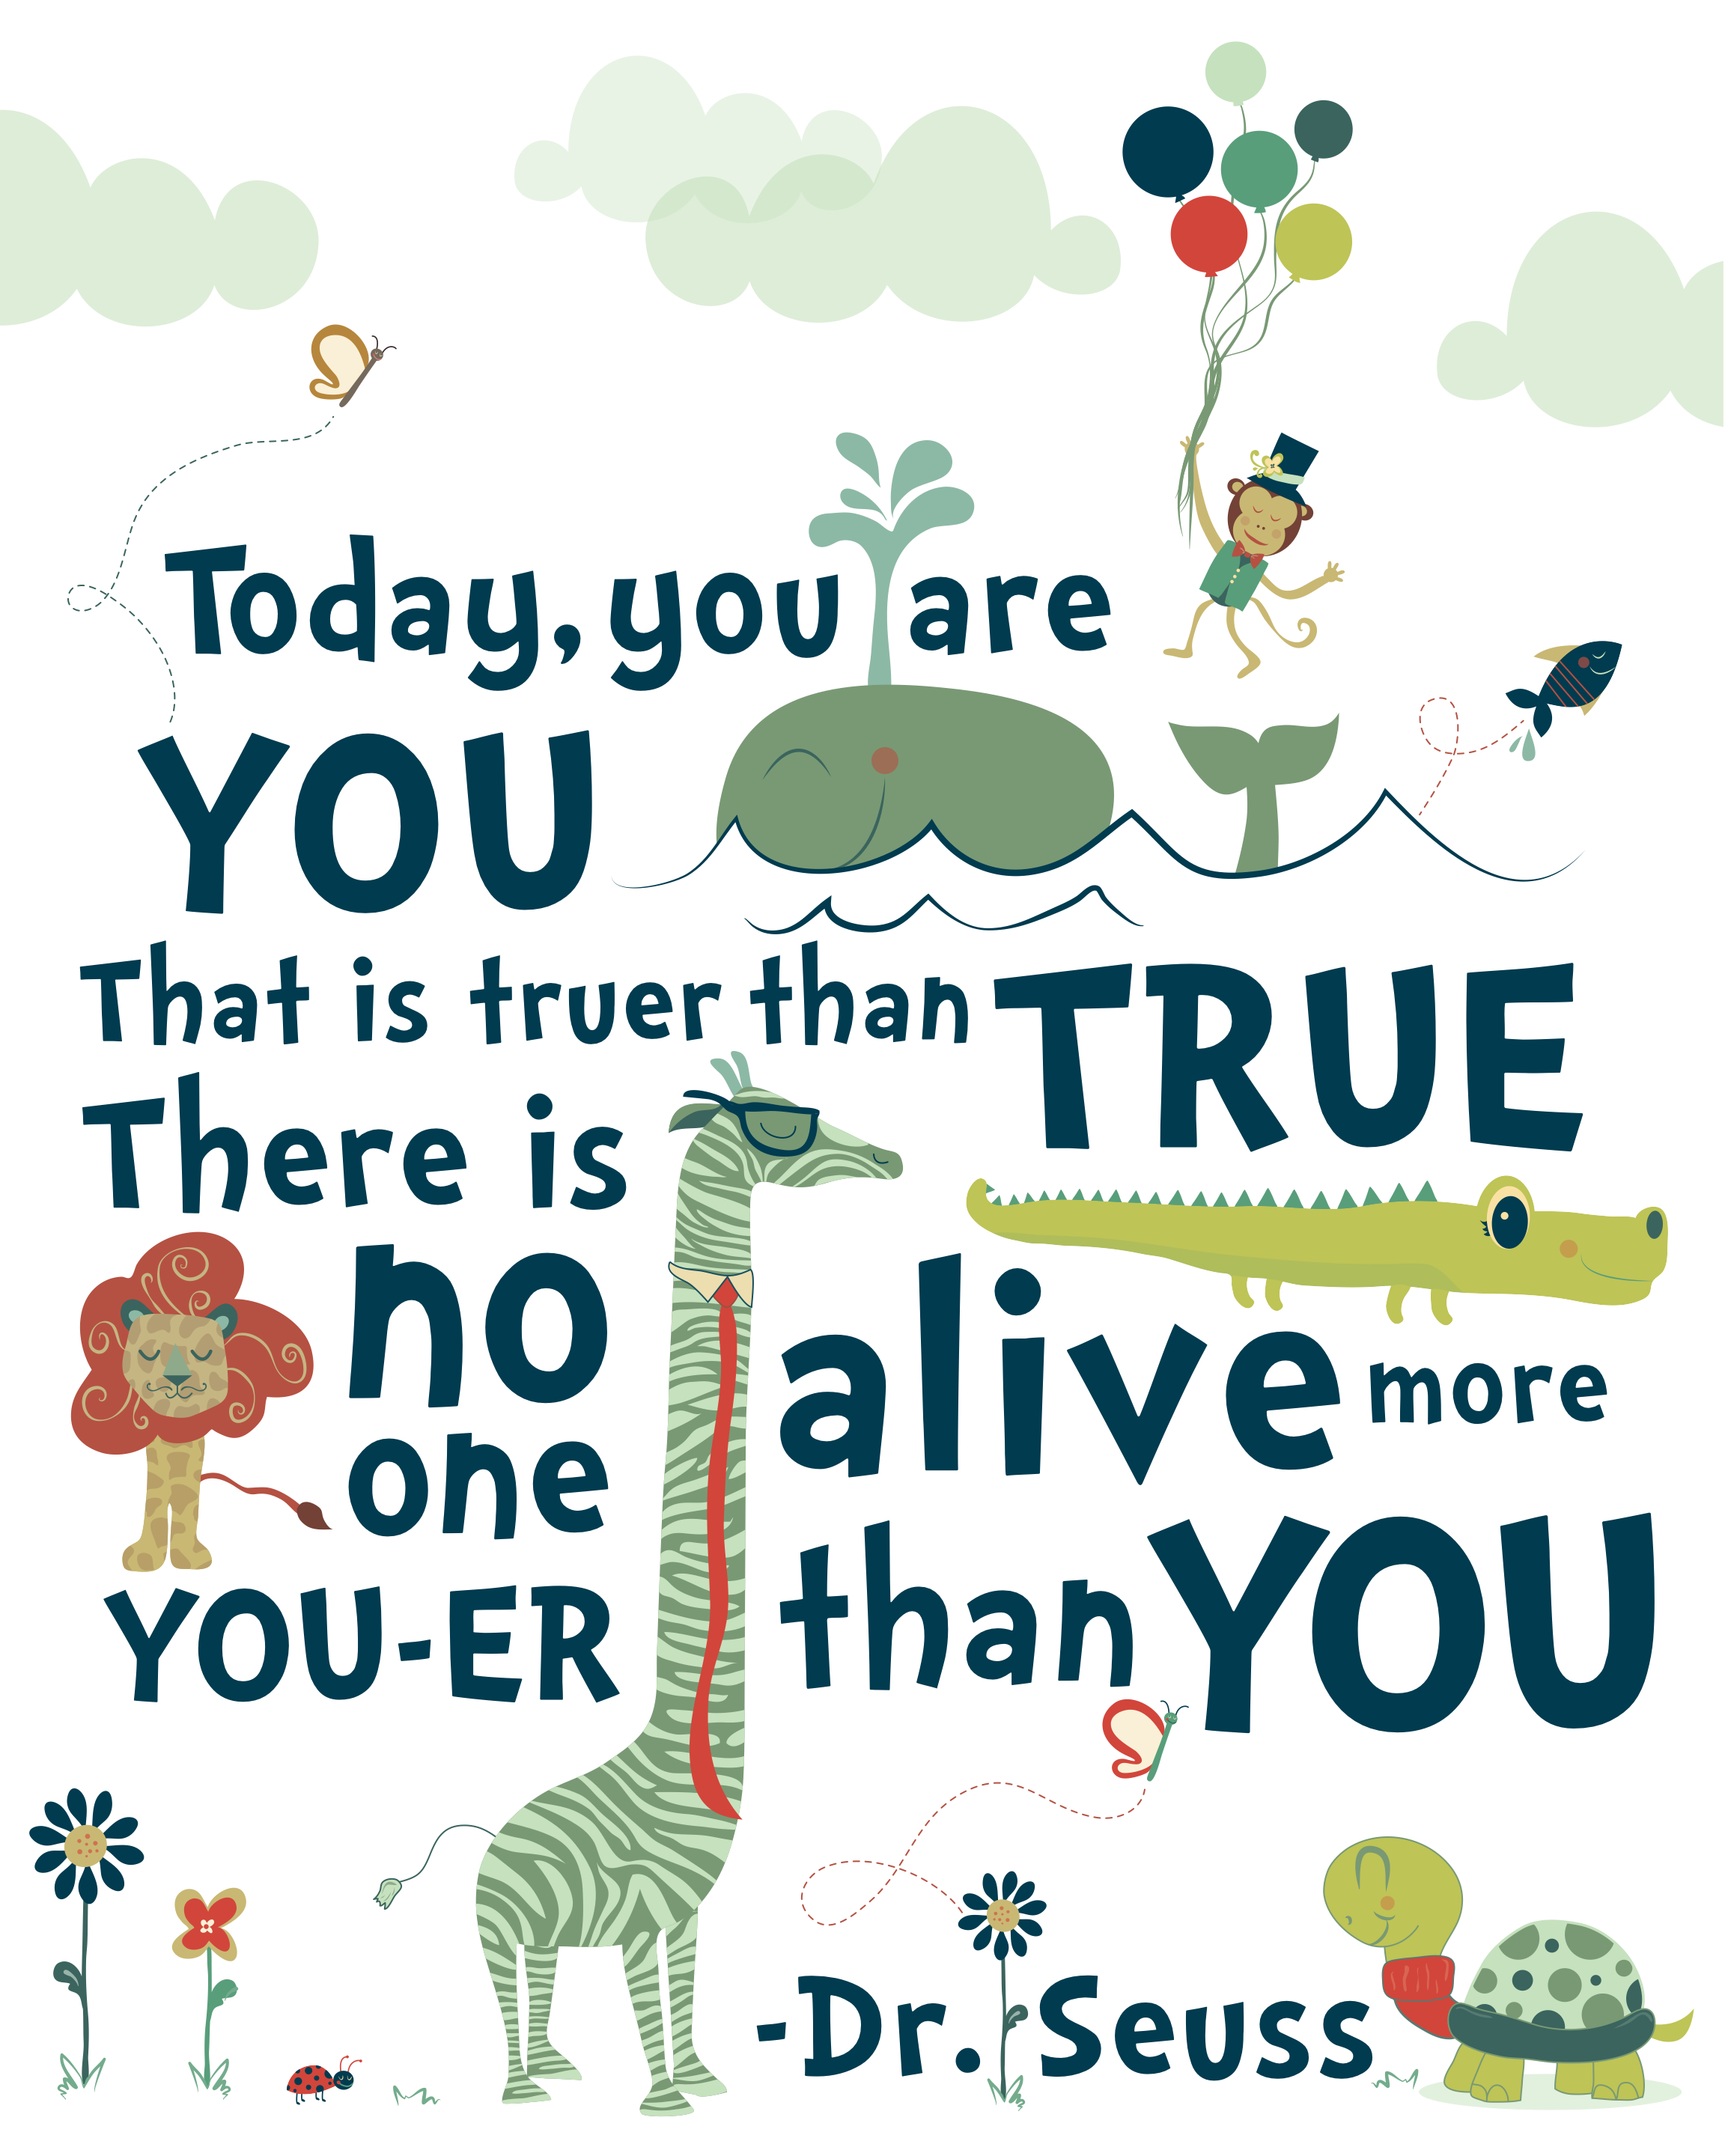 dr-seuss-quotes-be-who-you-aretoday-you-are-you-that-is-truer-than-true-----dr-seuss-g-liza-design-xxckrvaf